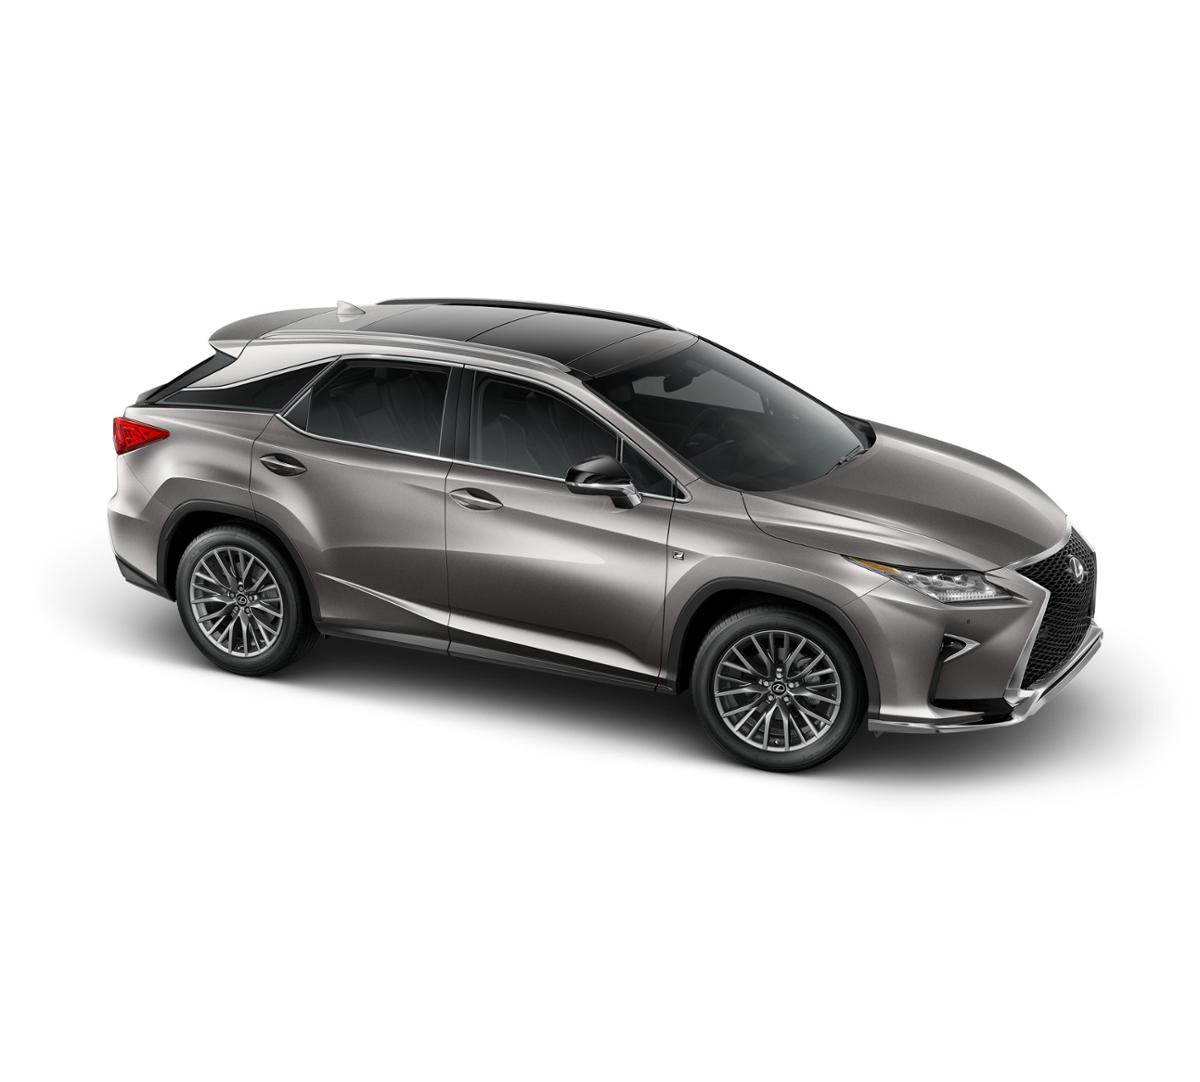 New Atomic Silver 2018 Lexus RX 350 F SPORT in Cerritos ...